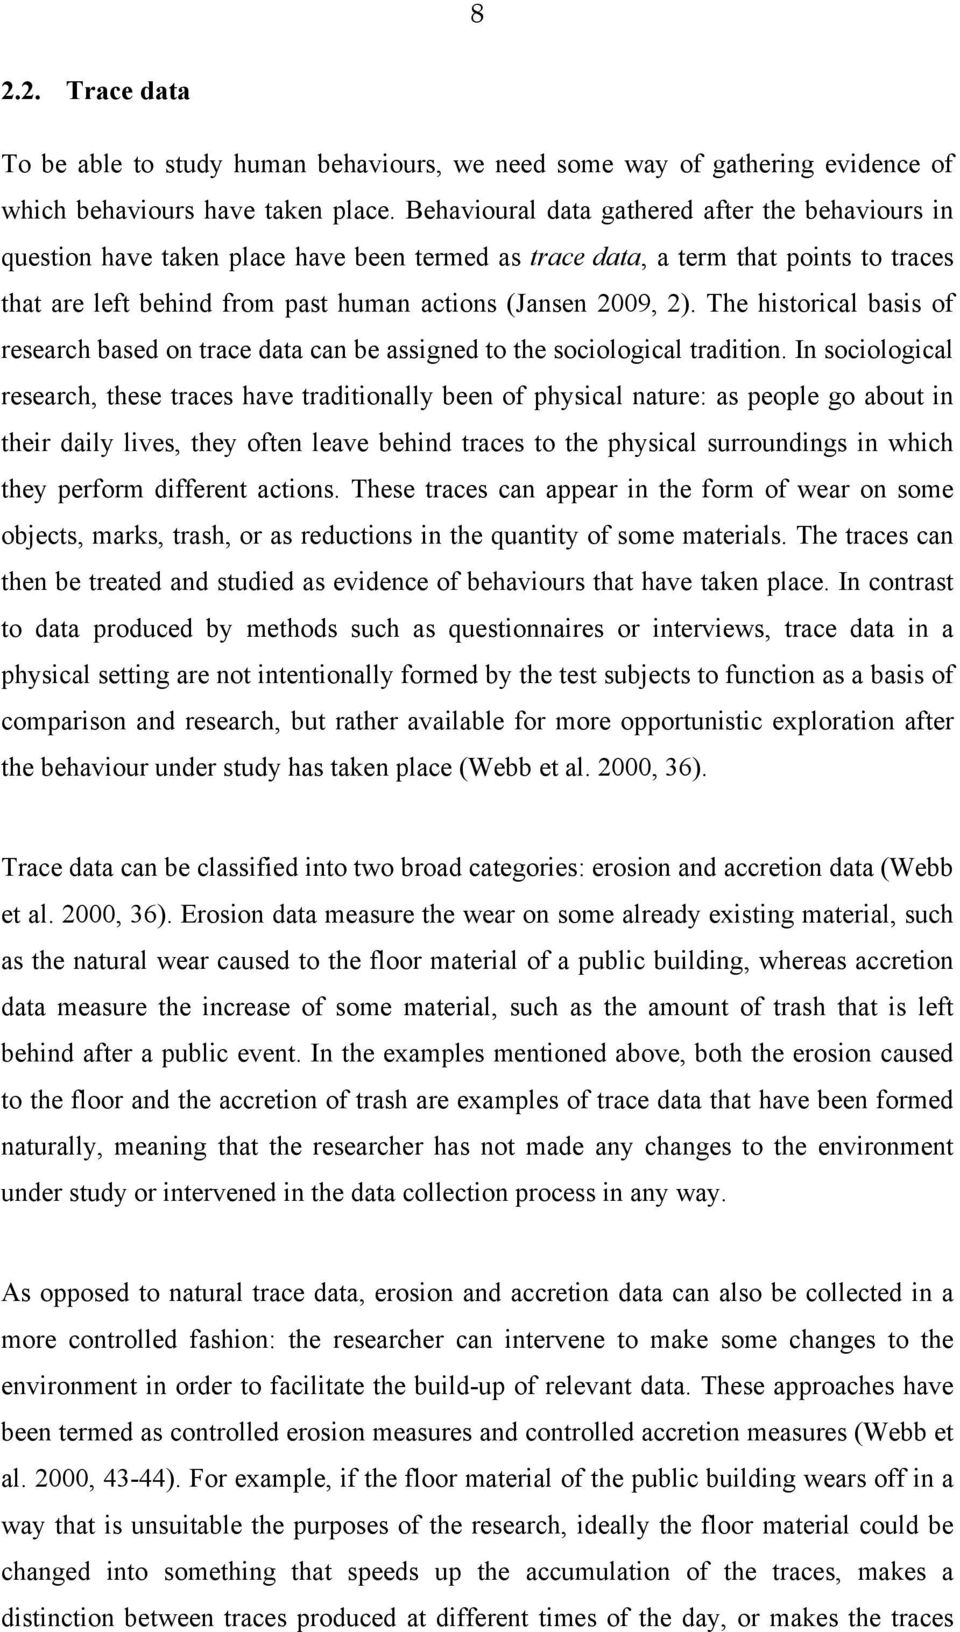 The historical basis of research based on trace data can be assigned to the sociological tradition.